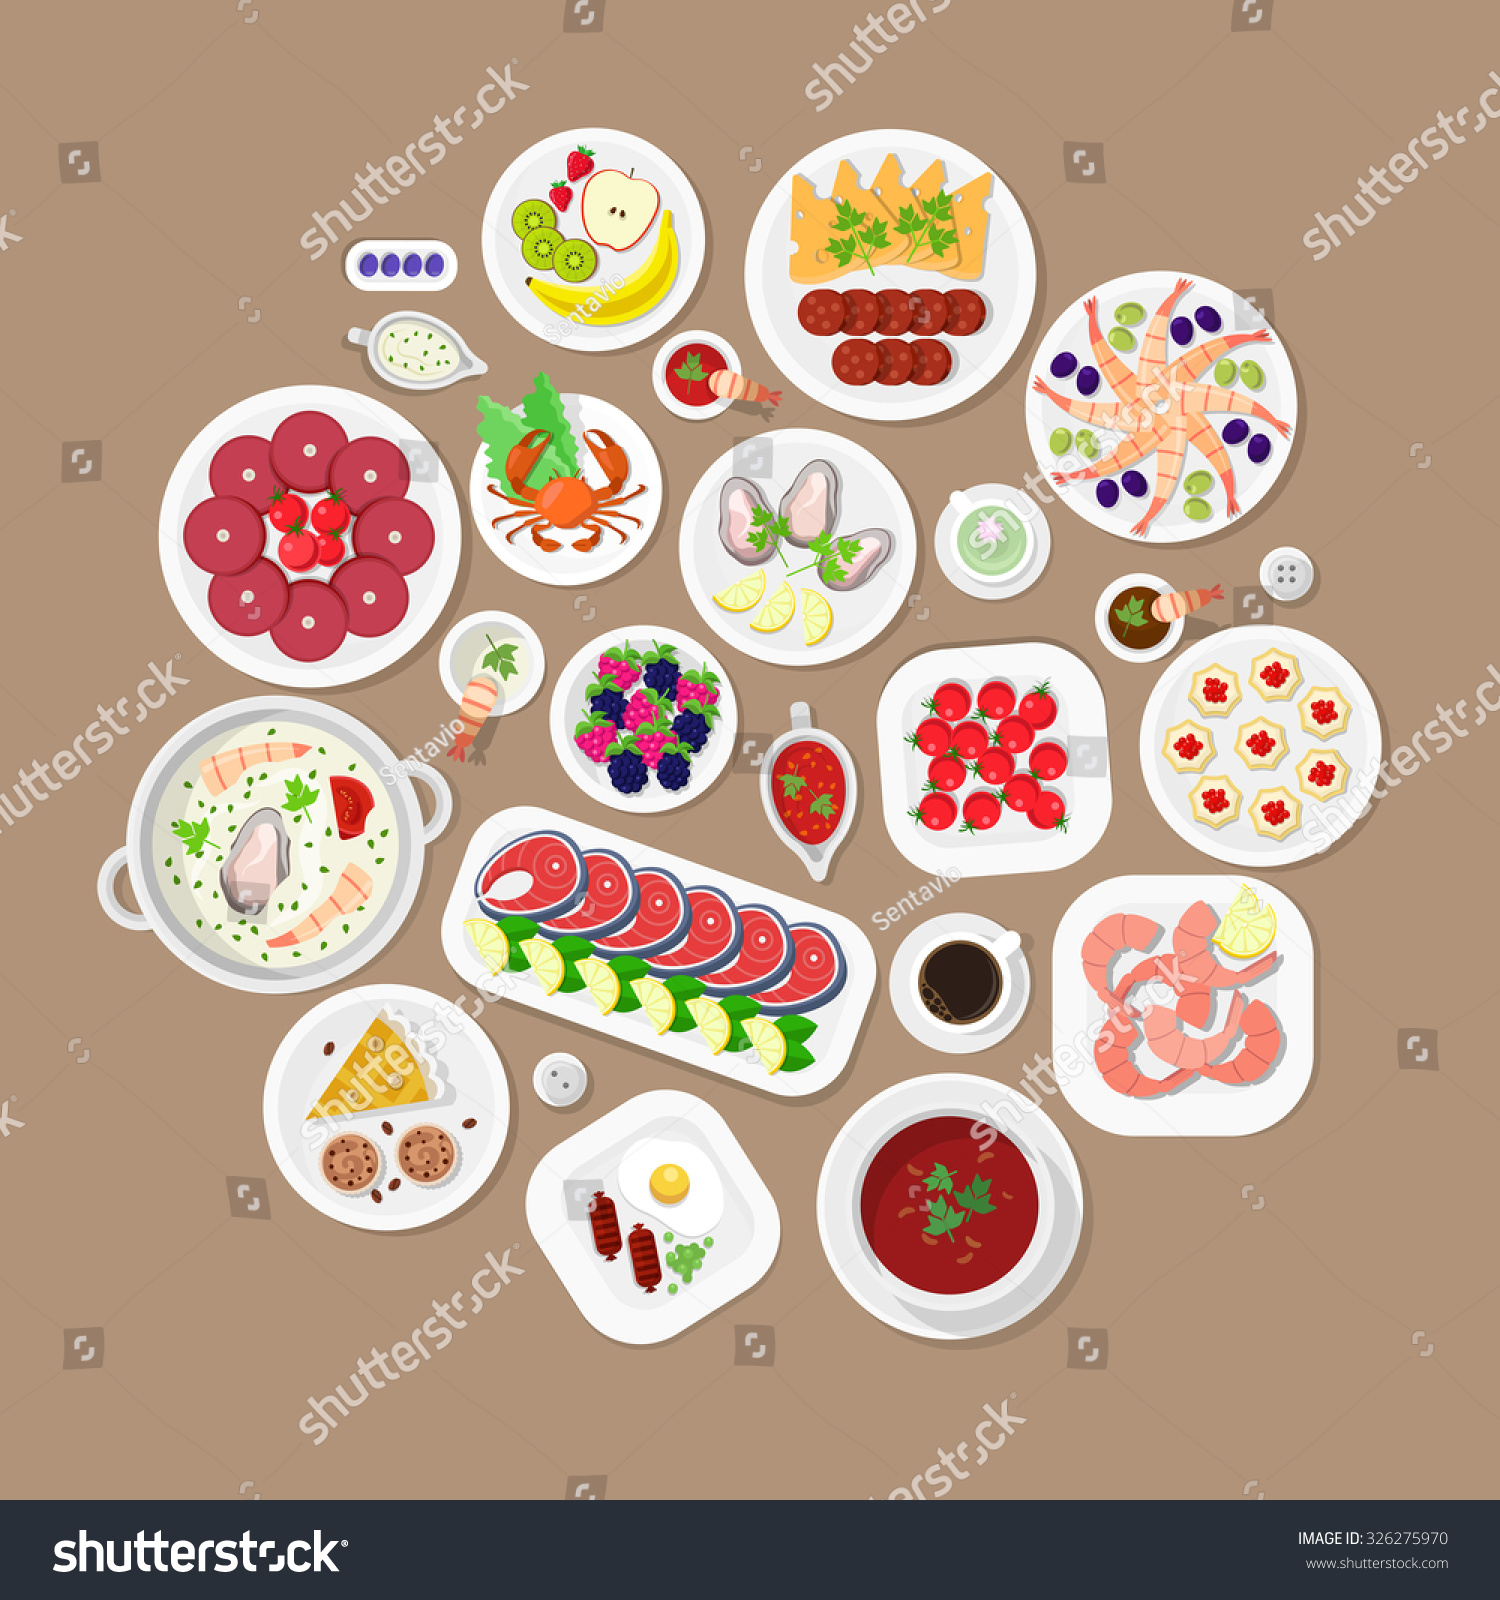 For restaurant pictures graphics illustrations clipart photos - Restaurant Flat Style Design Vector Graphic Top View Elements Set Lobster Fish Steak Shrimps Oysters